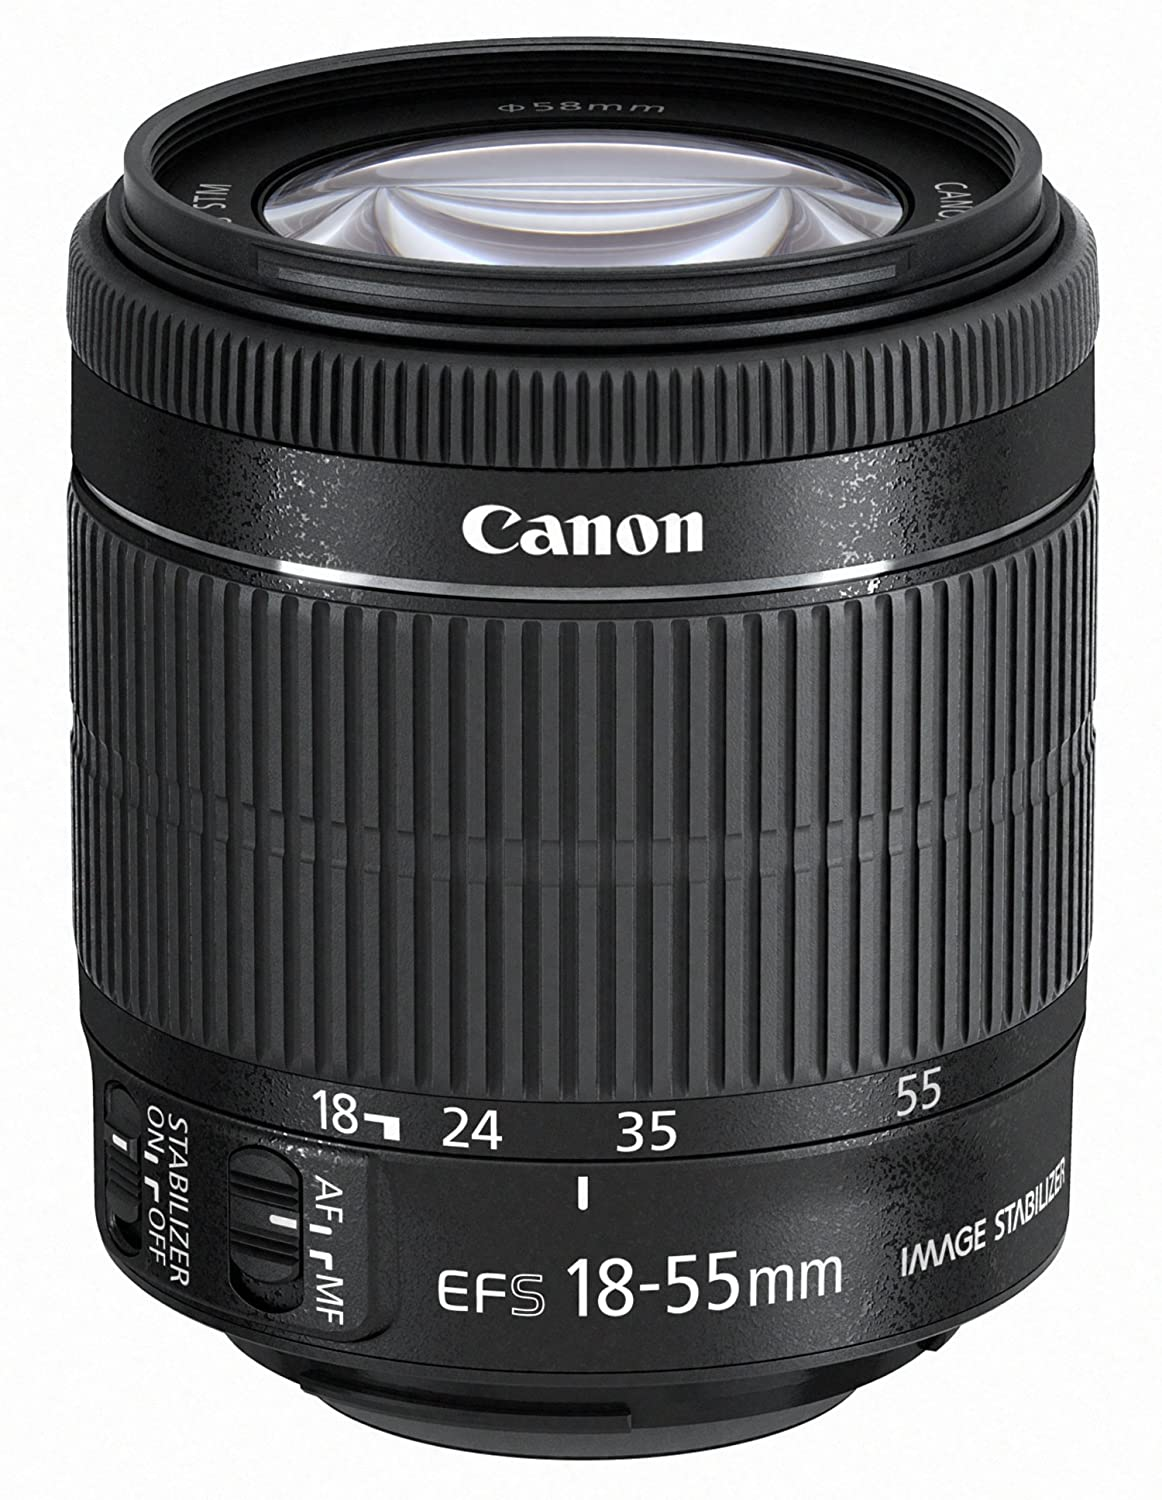 Canon EF S mm f IS STM Objetivo para Canon distancia focal